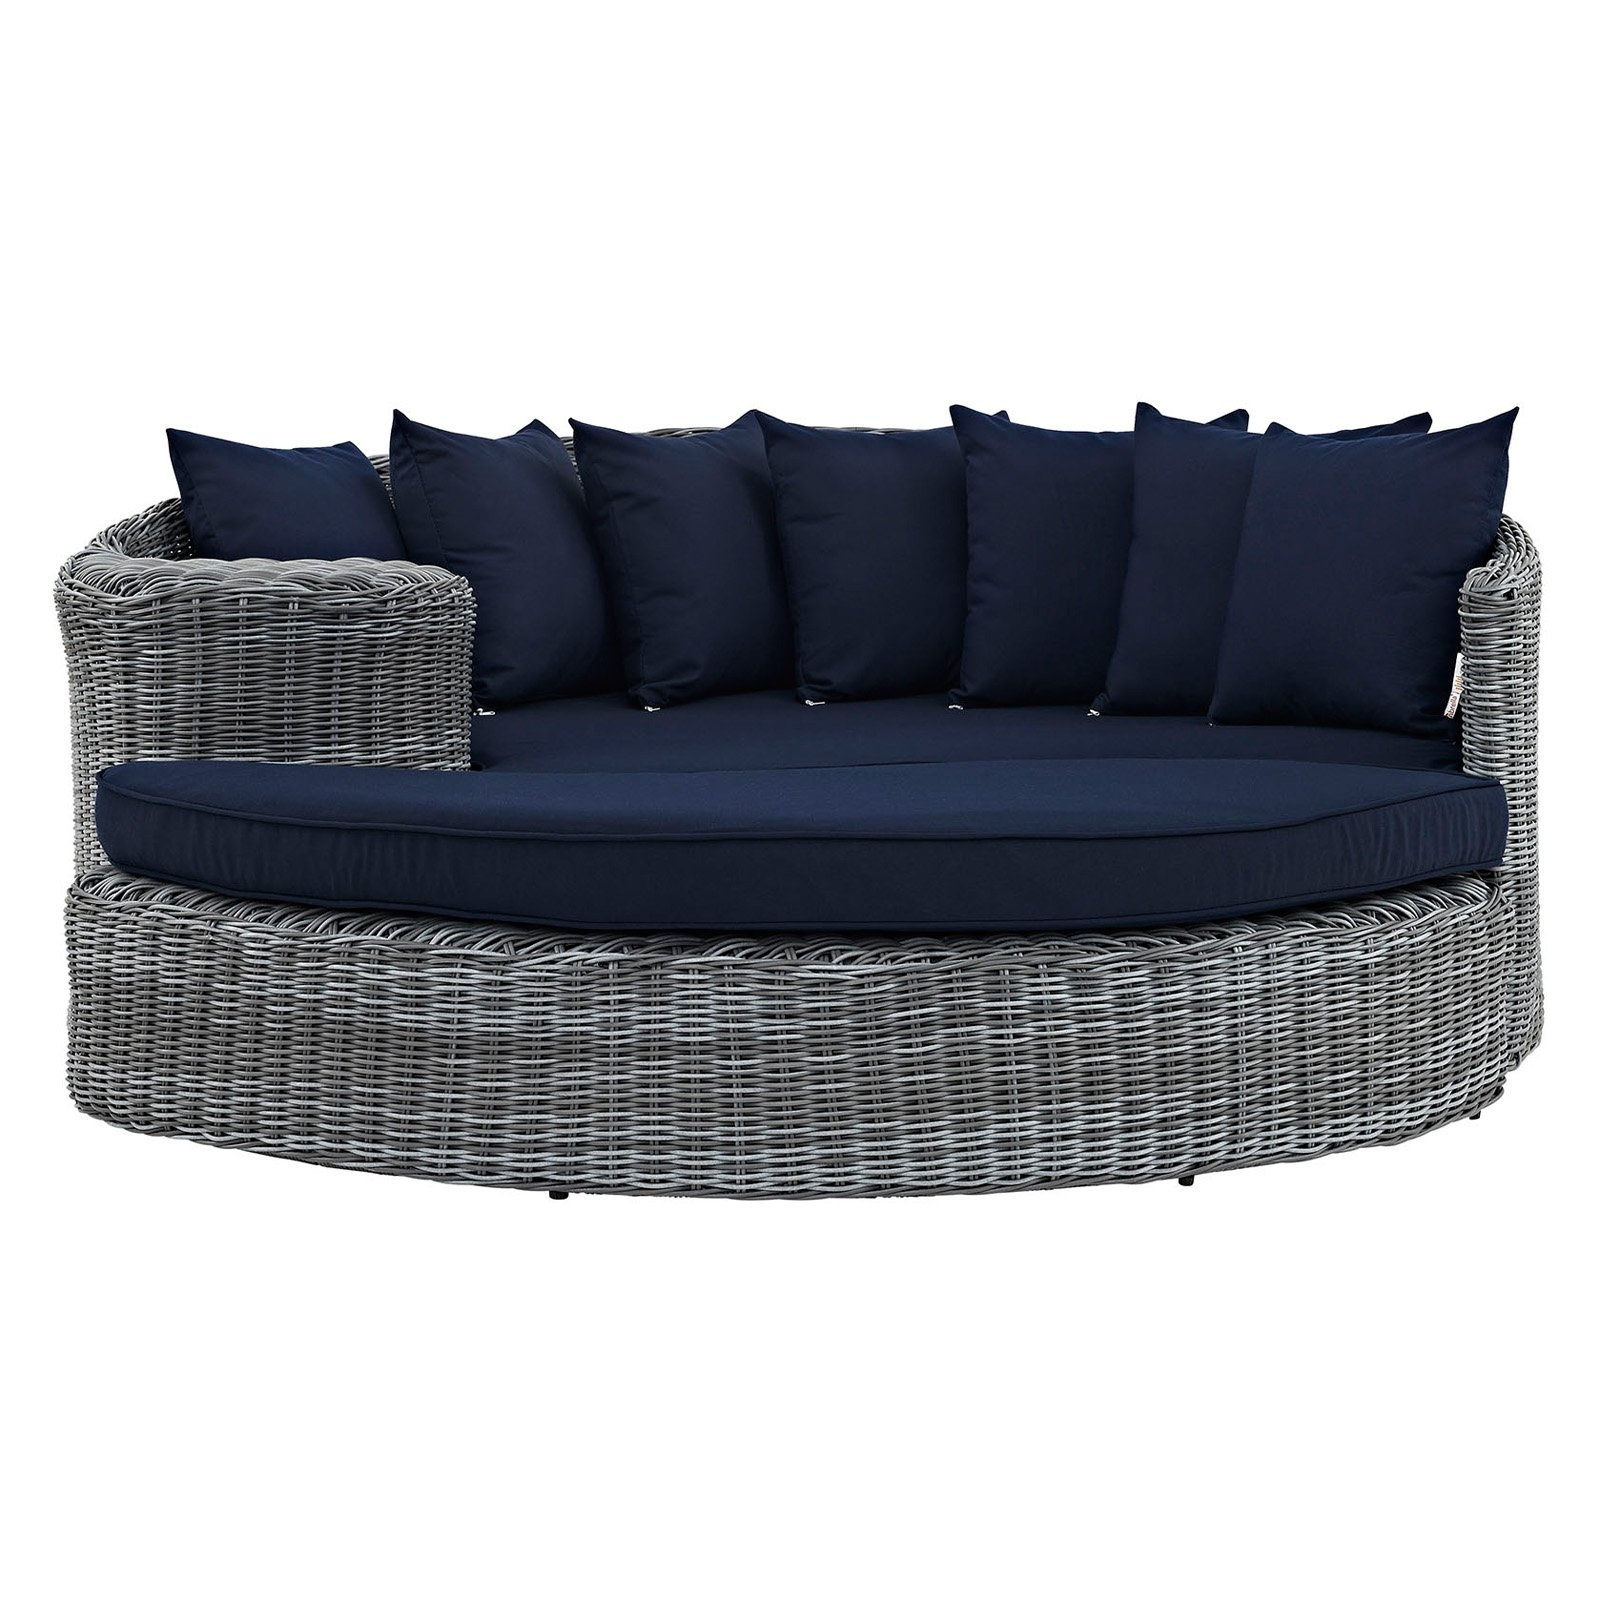 Outdoor Rattan Daybed Homeware: Buy Online from Fishpond.co.nz